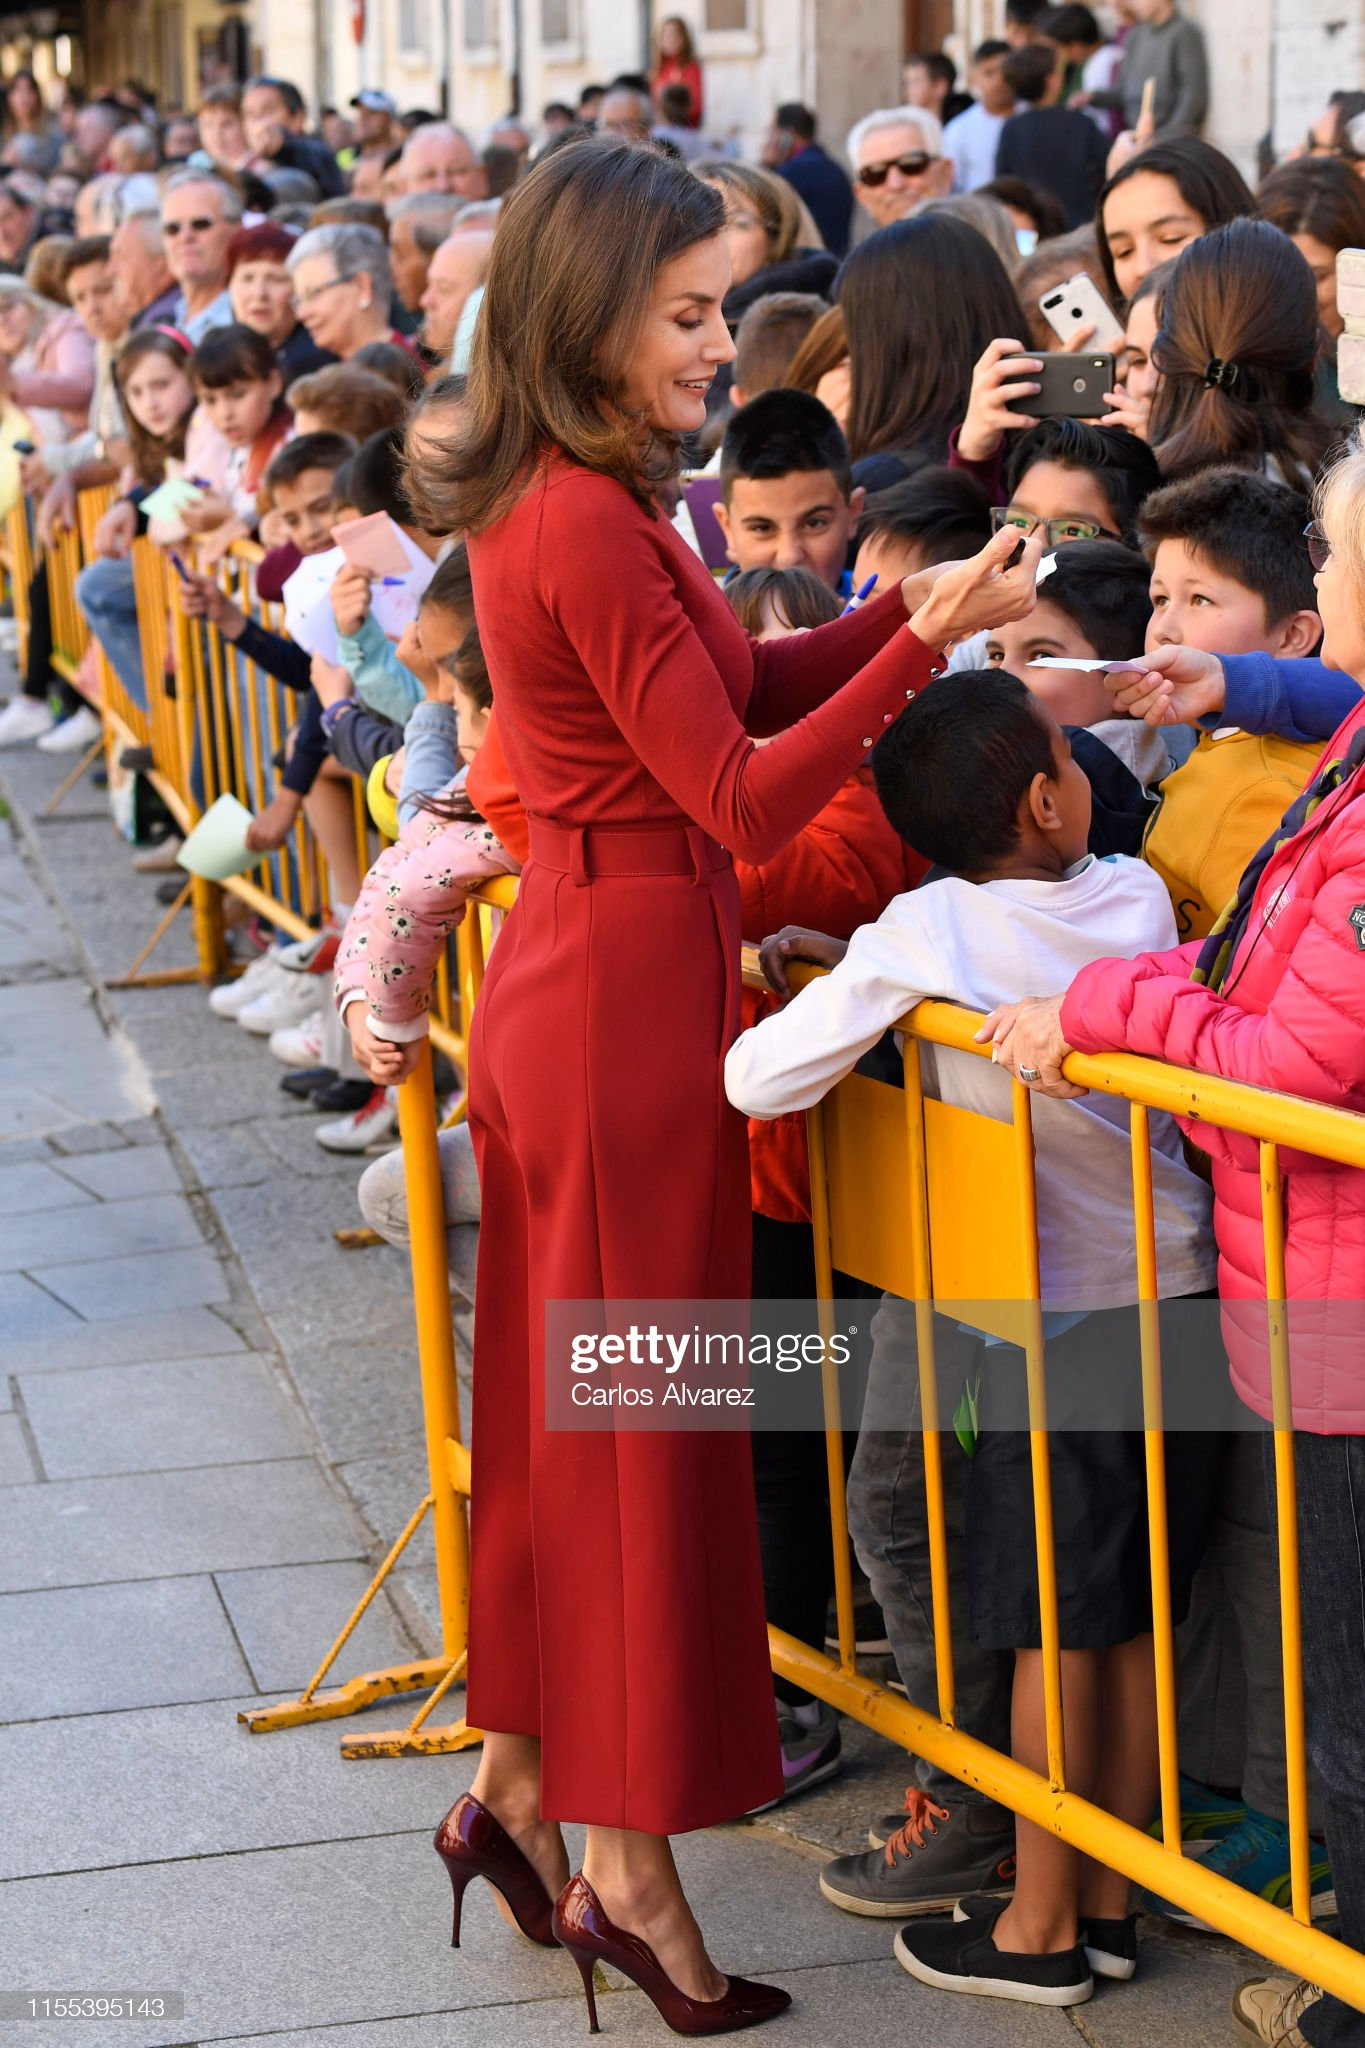 https://media.gettyimages.com/photos/queen-letizia-of-spain-meets-spectators-as-she-attends-the-closure-of-picture-id1155395143?s=2048x2048